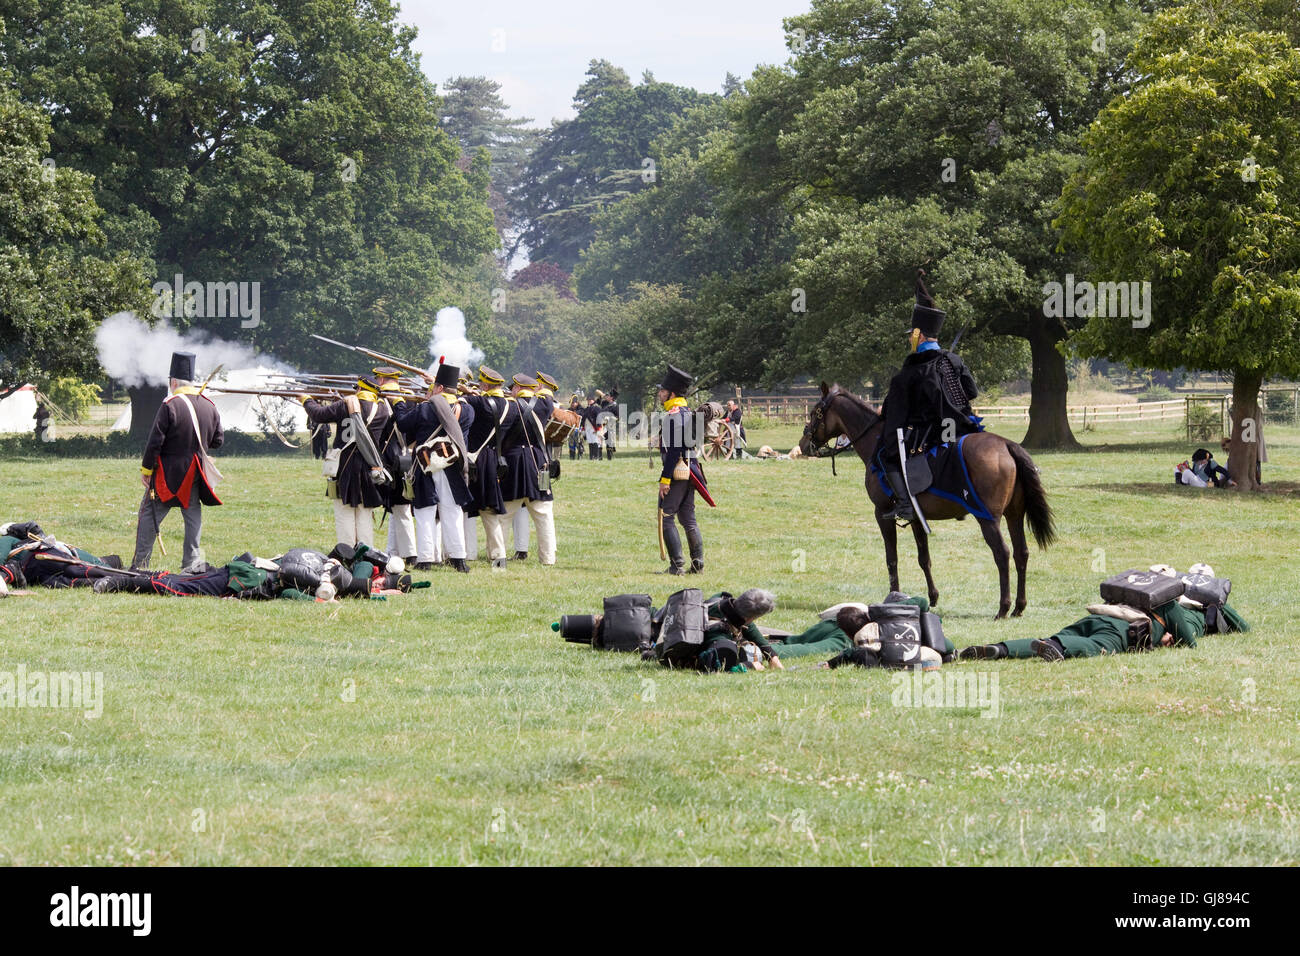 Napoleon's Cavalry at the reenactment for the Battle of Waterloo - Stock Image